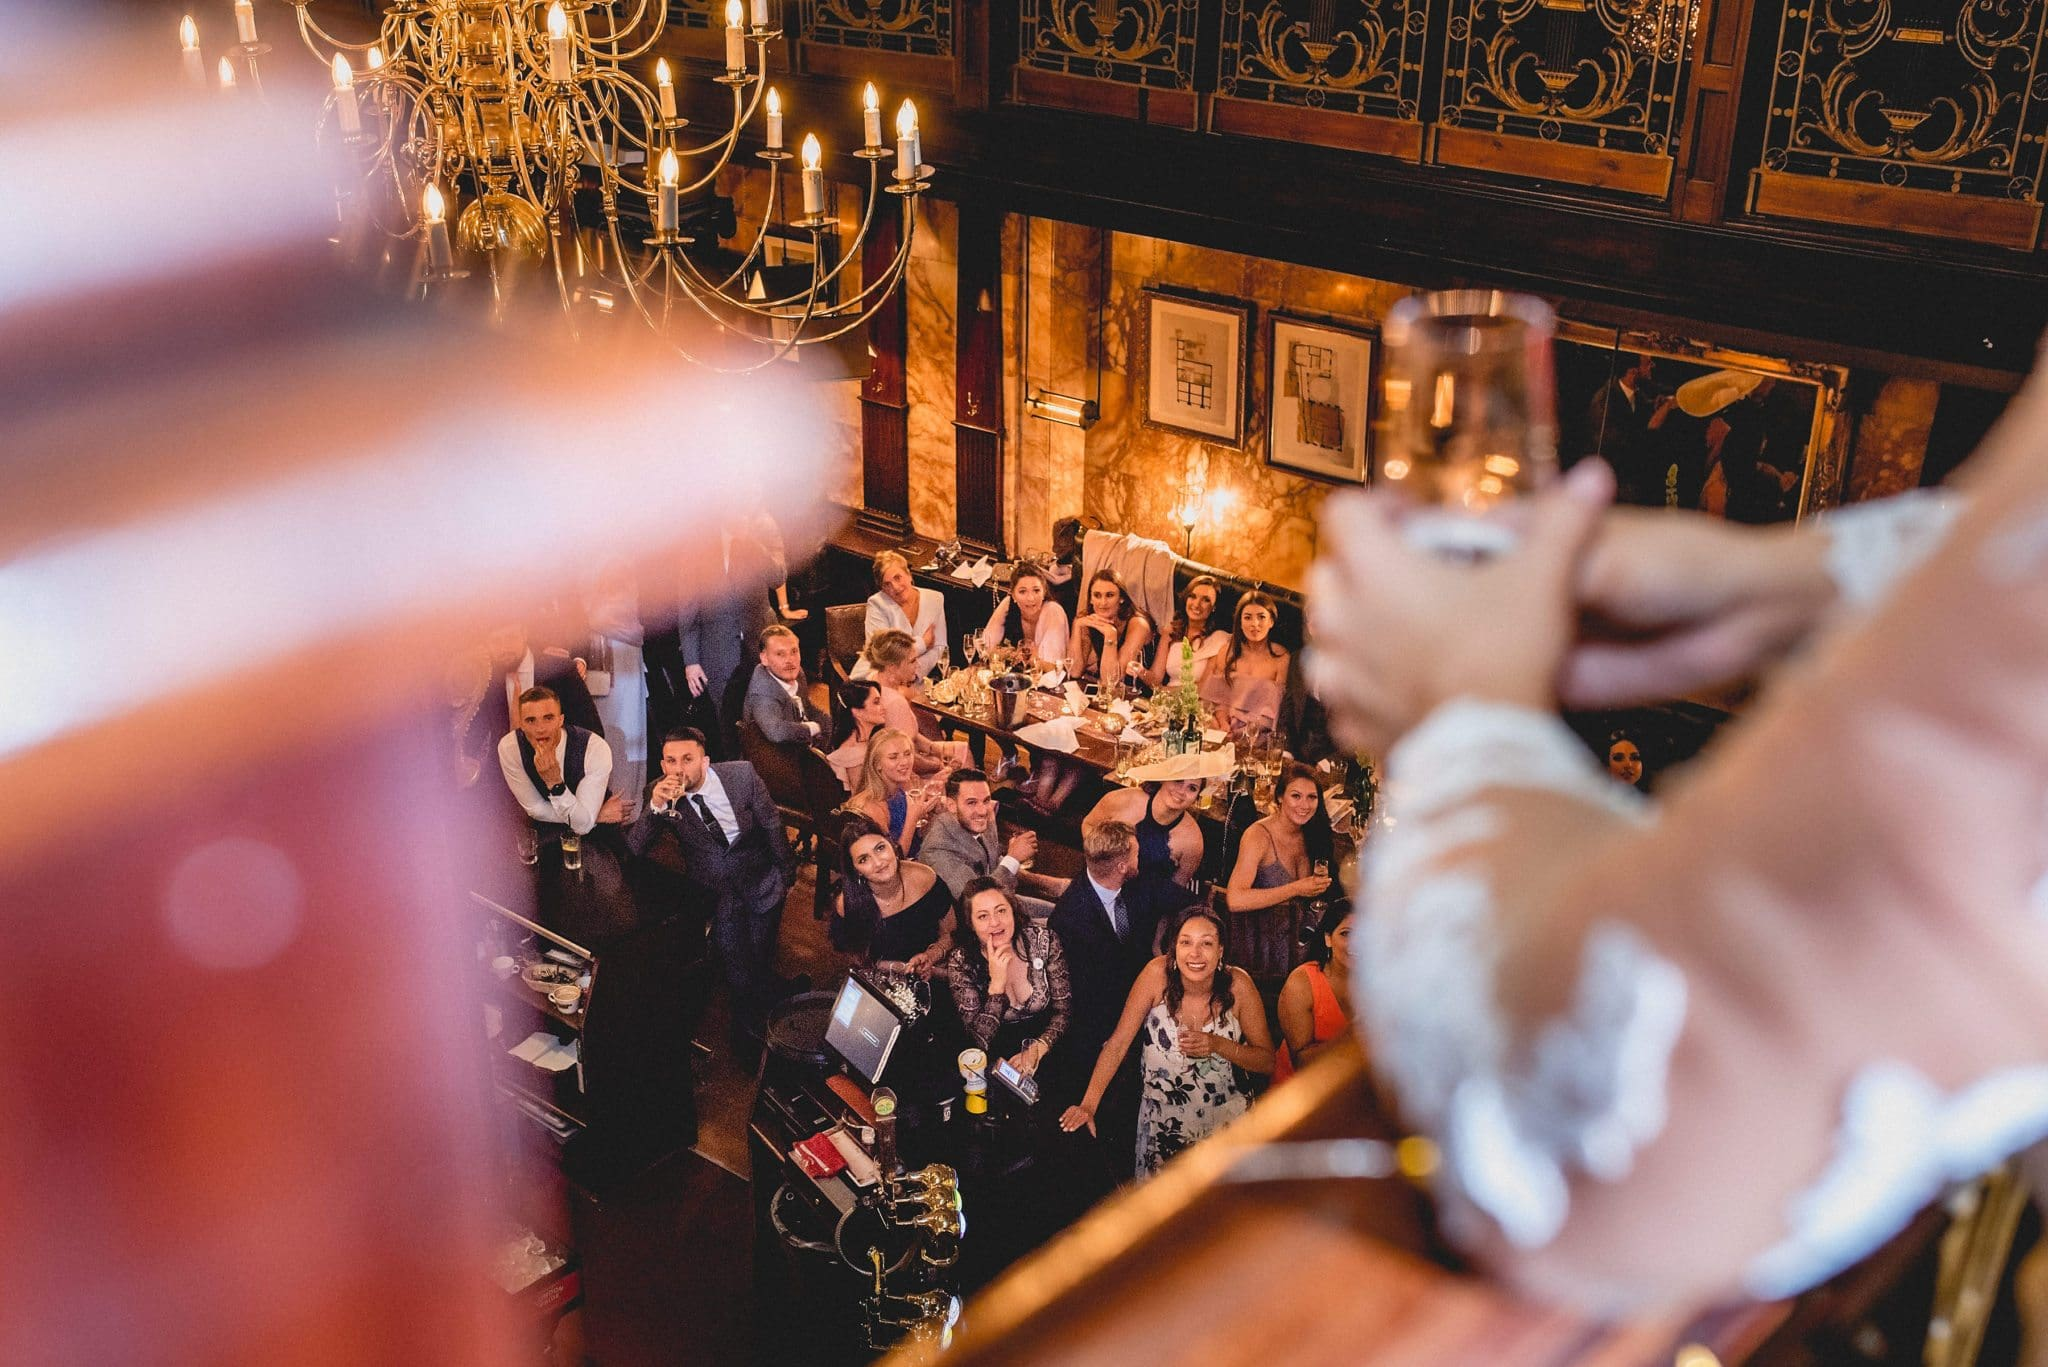 Shot from the balcony of The Counting House pub - guests look up smiling as the bride and groom give speeches